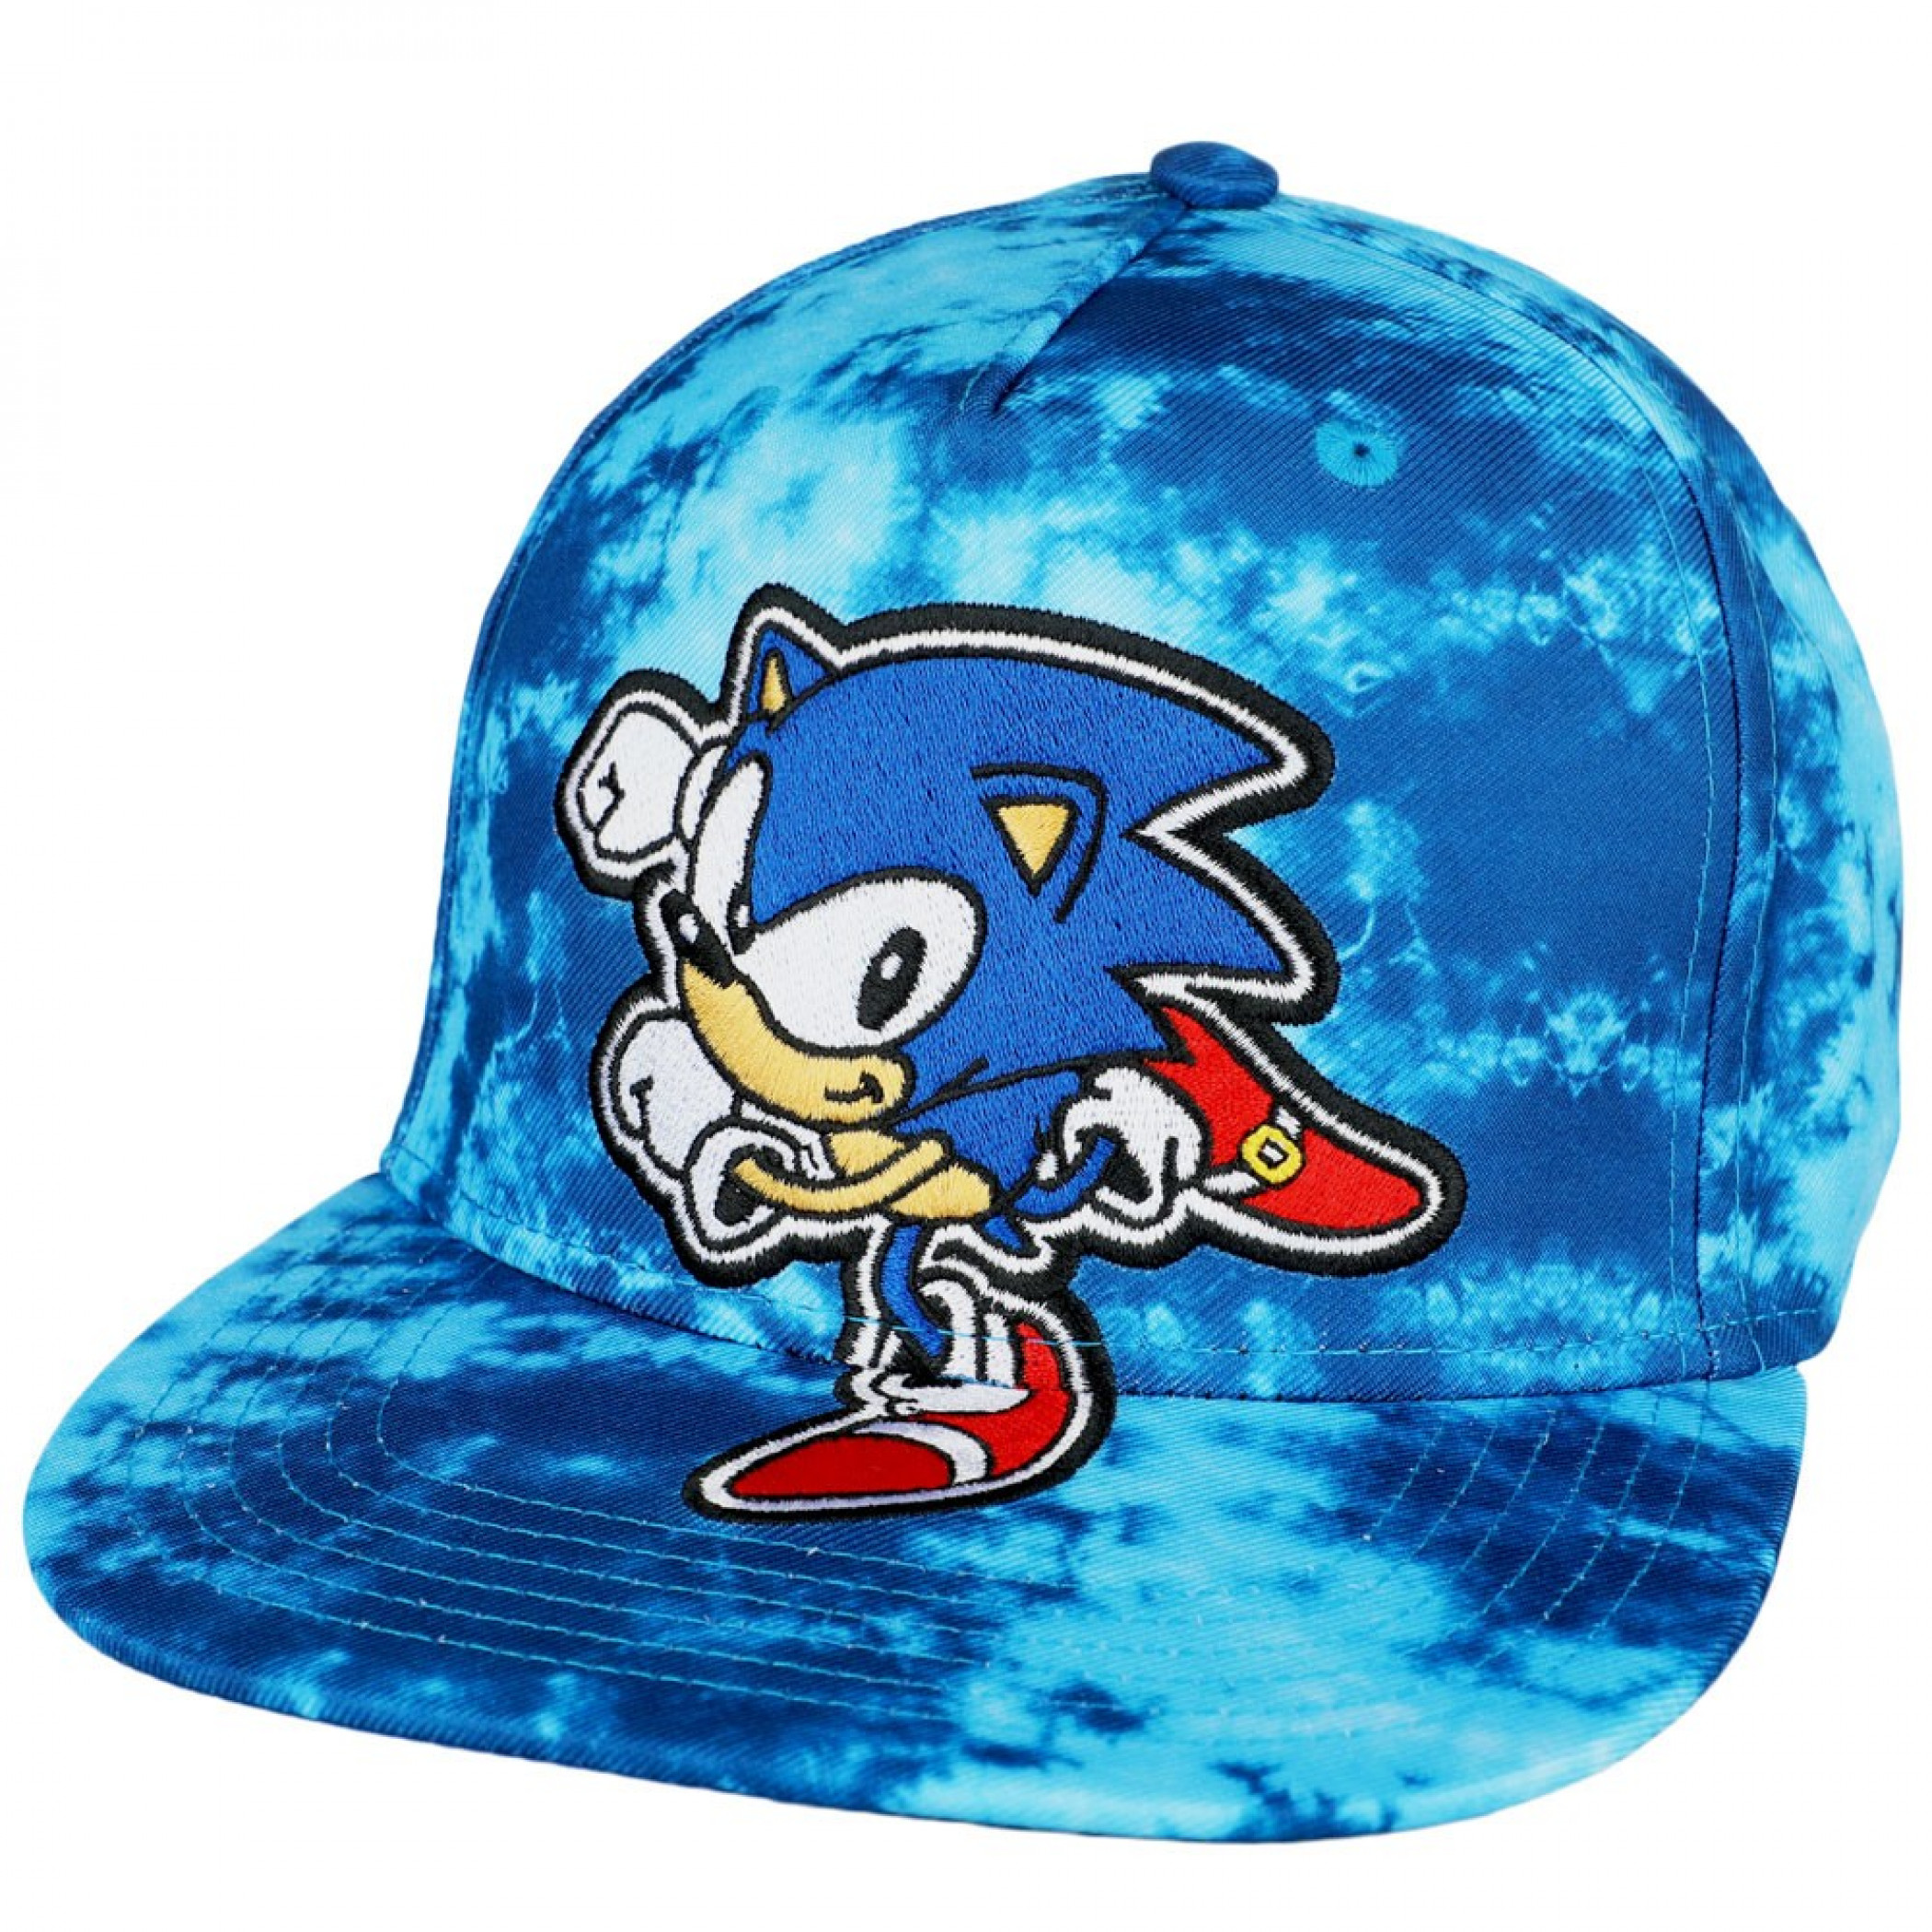 Sonic The Hedgehog Youth Tie Dye Pre-Curved Bill Snapback Hat